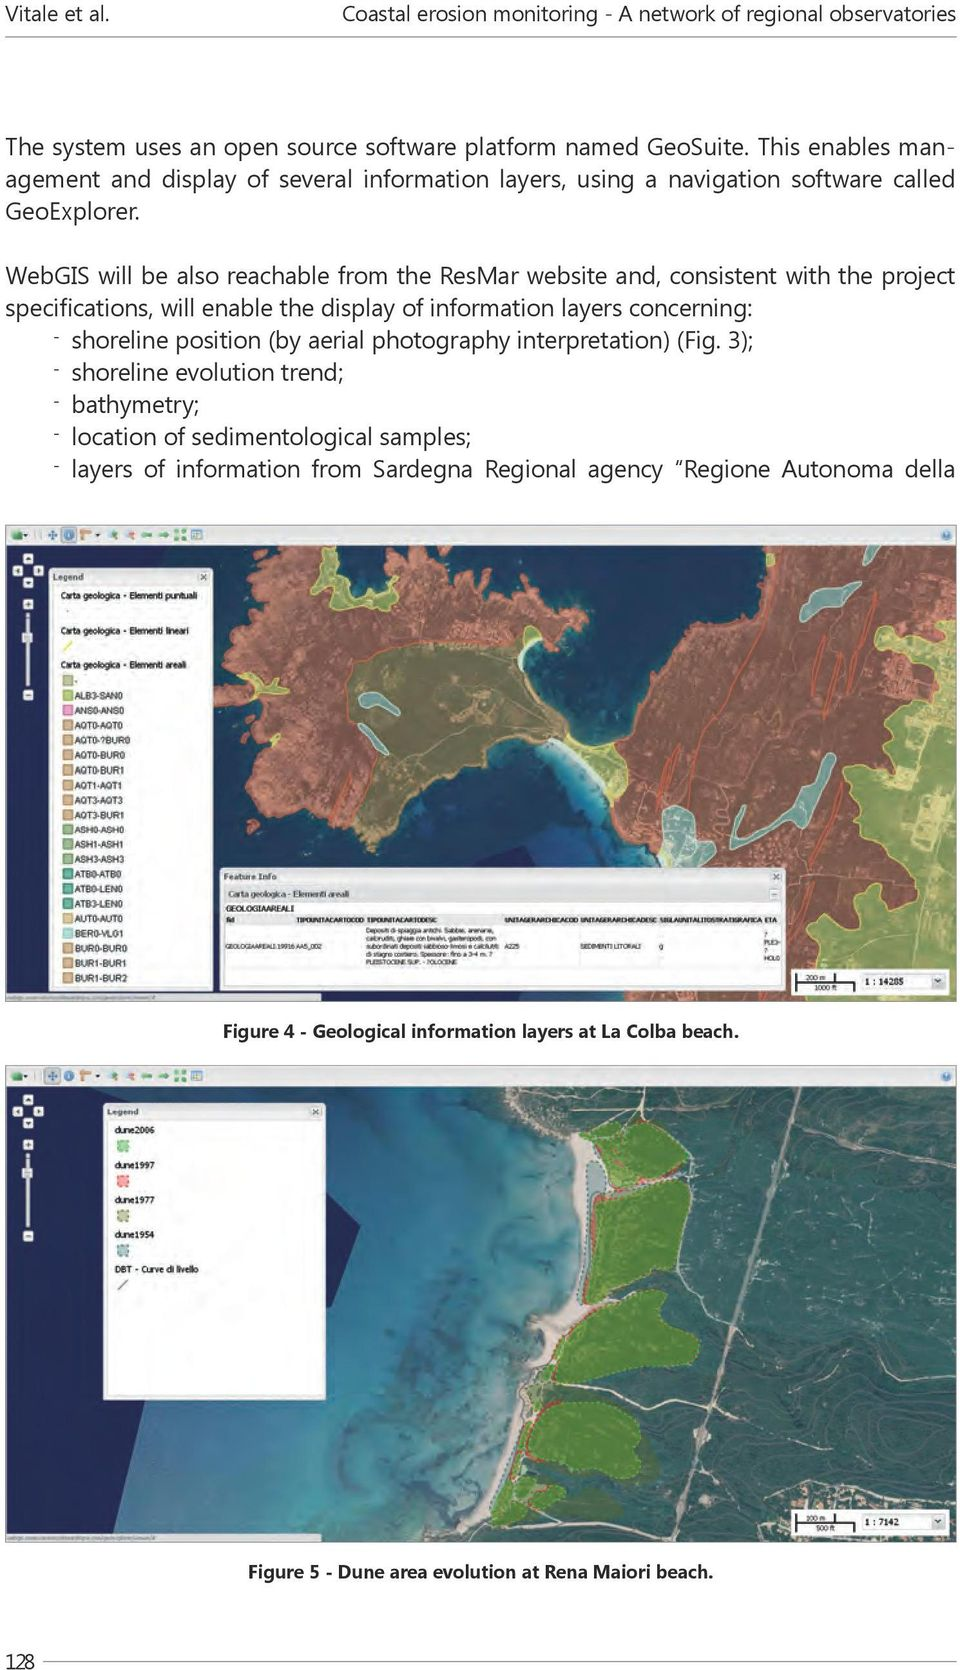 WebGIS will be also reachable from the ResMar website and, consistent with the project specifications, will enable the display of information layers concerning: shoreline